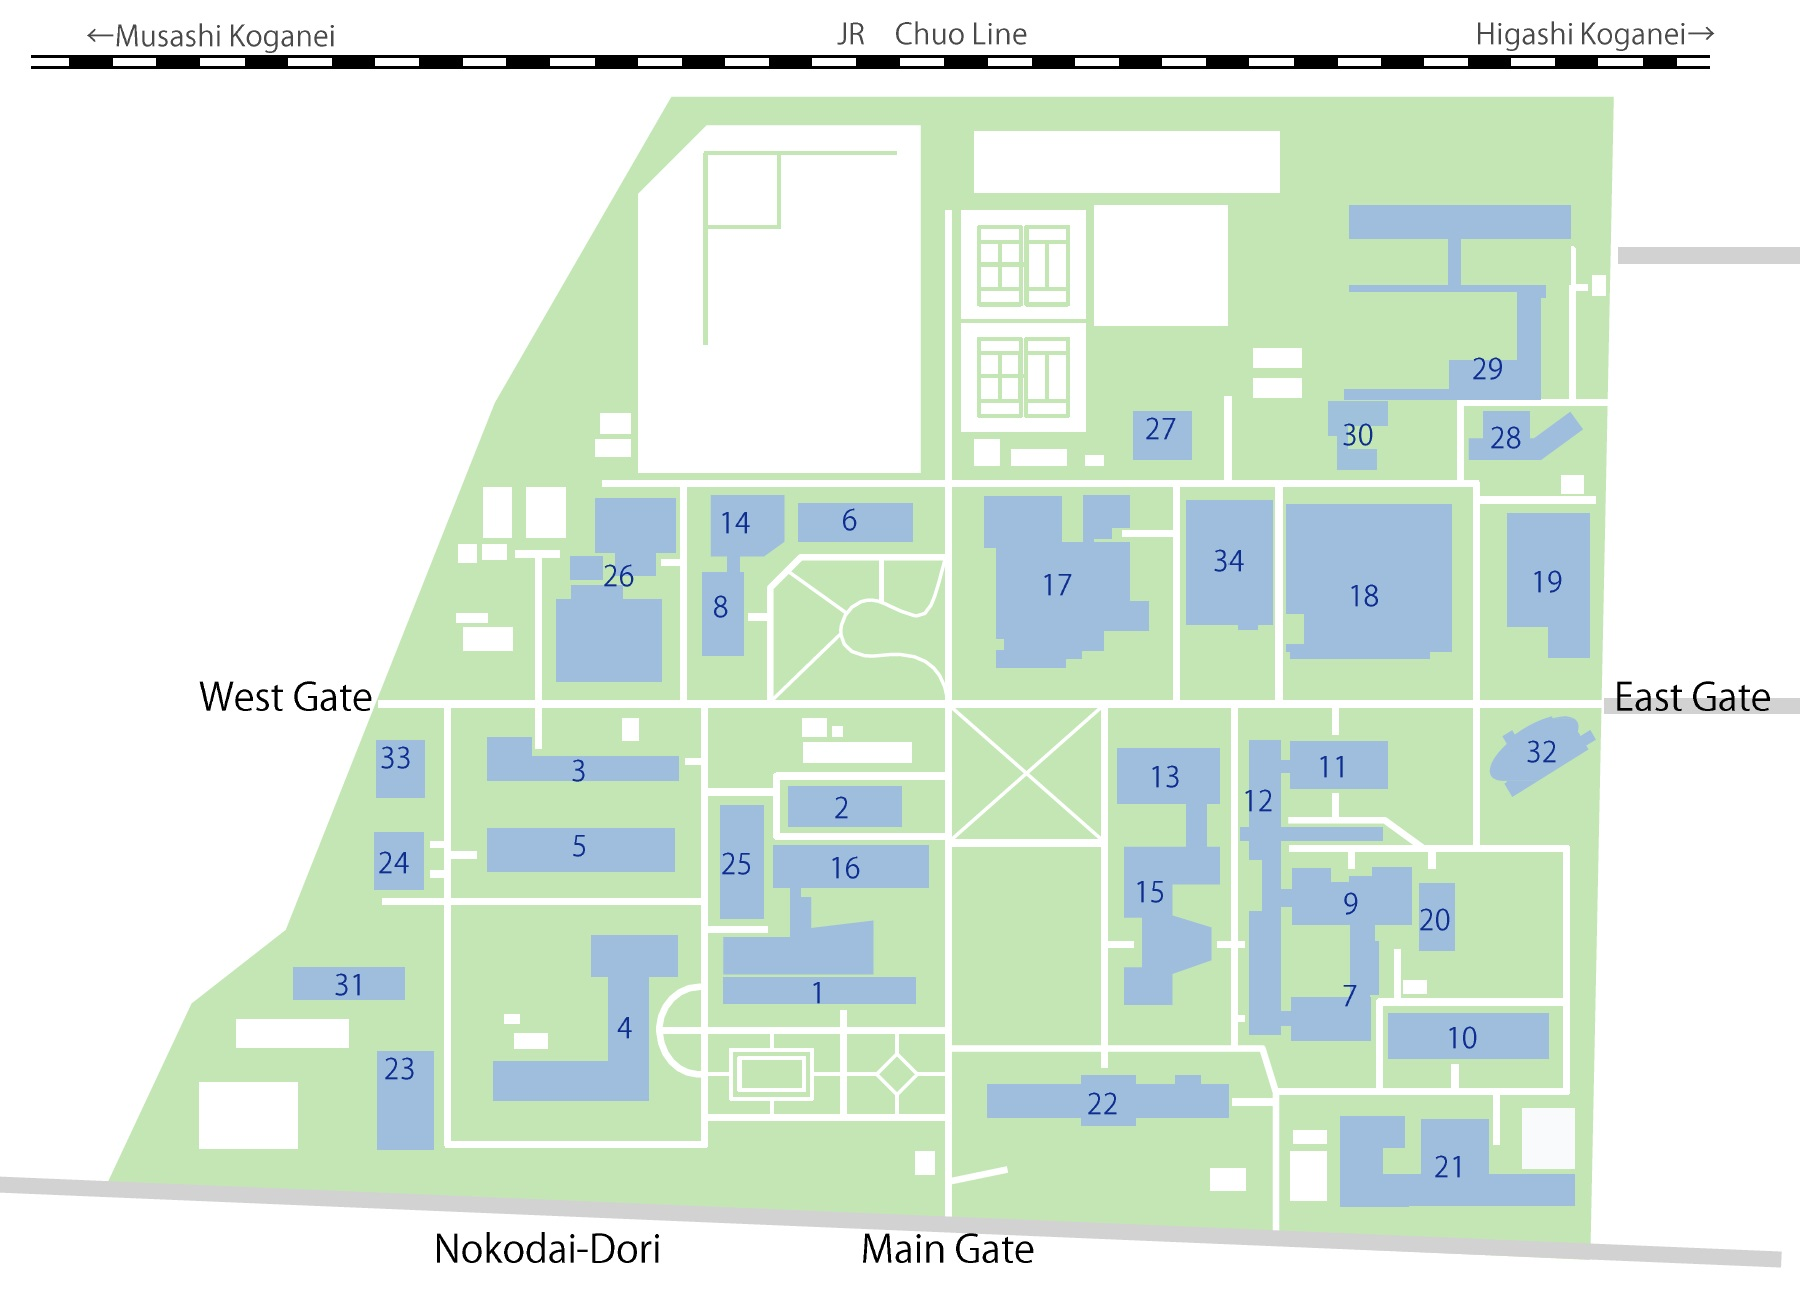 Applied Materials Campus Map.Koganei Campus Map Transportation Guidance And Campus Maps